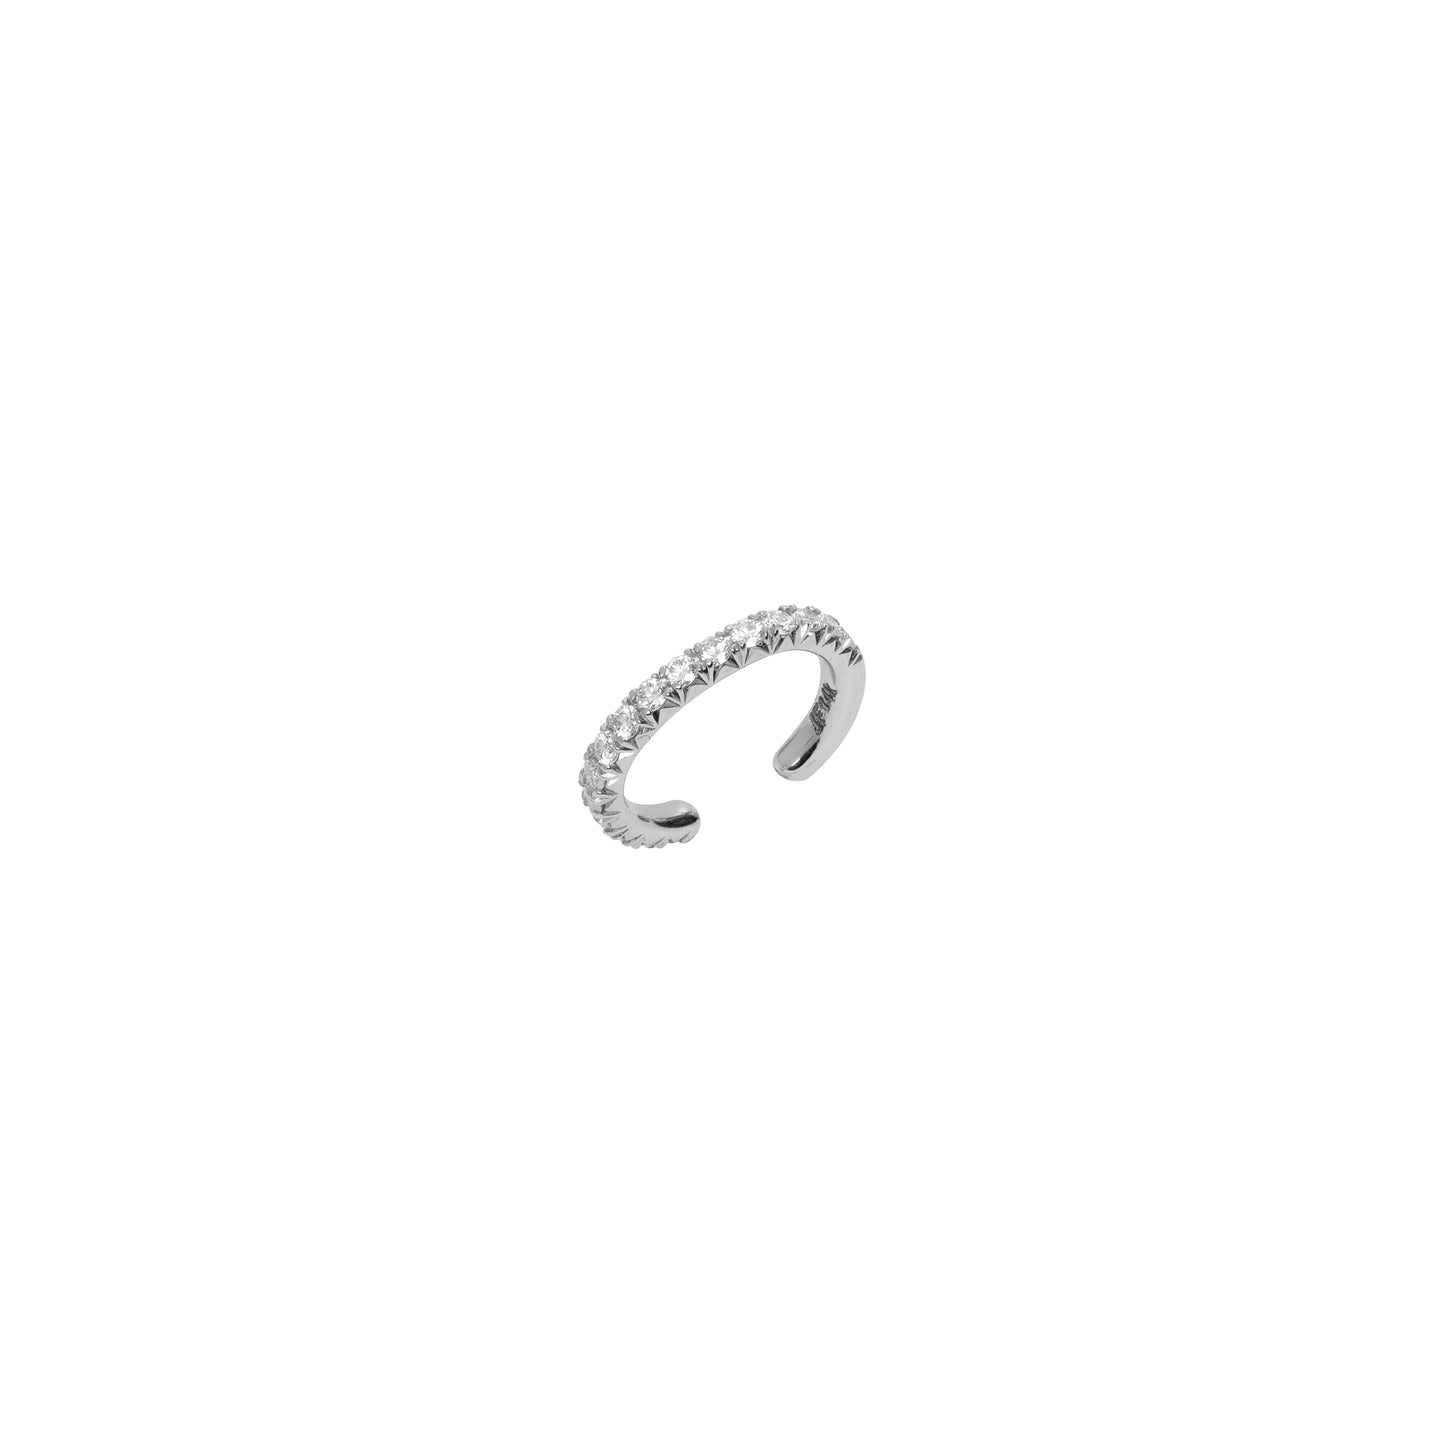 Ear Cuff with Pave White Diamonds